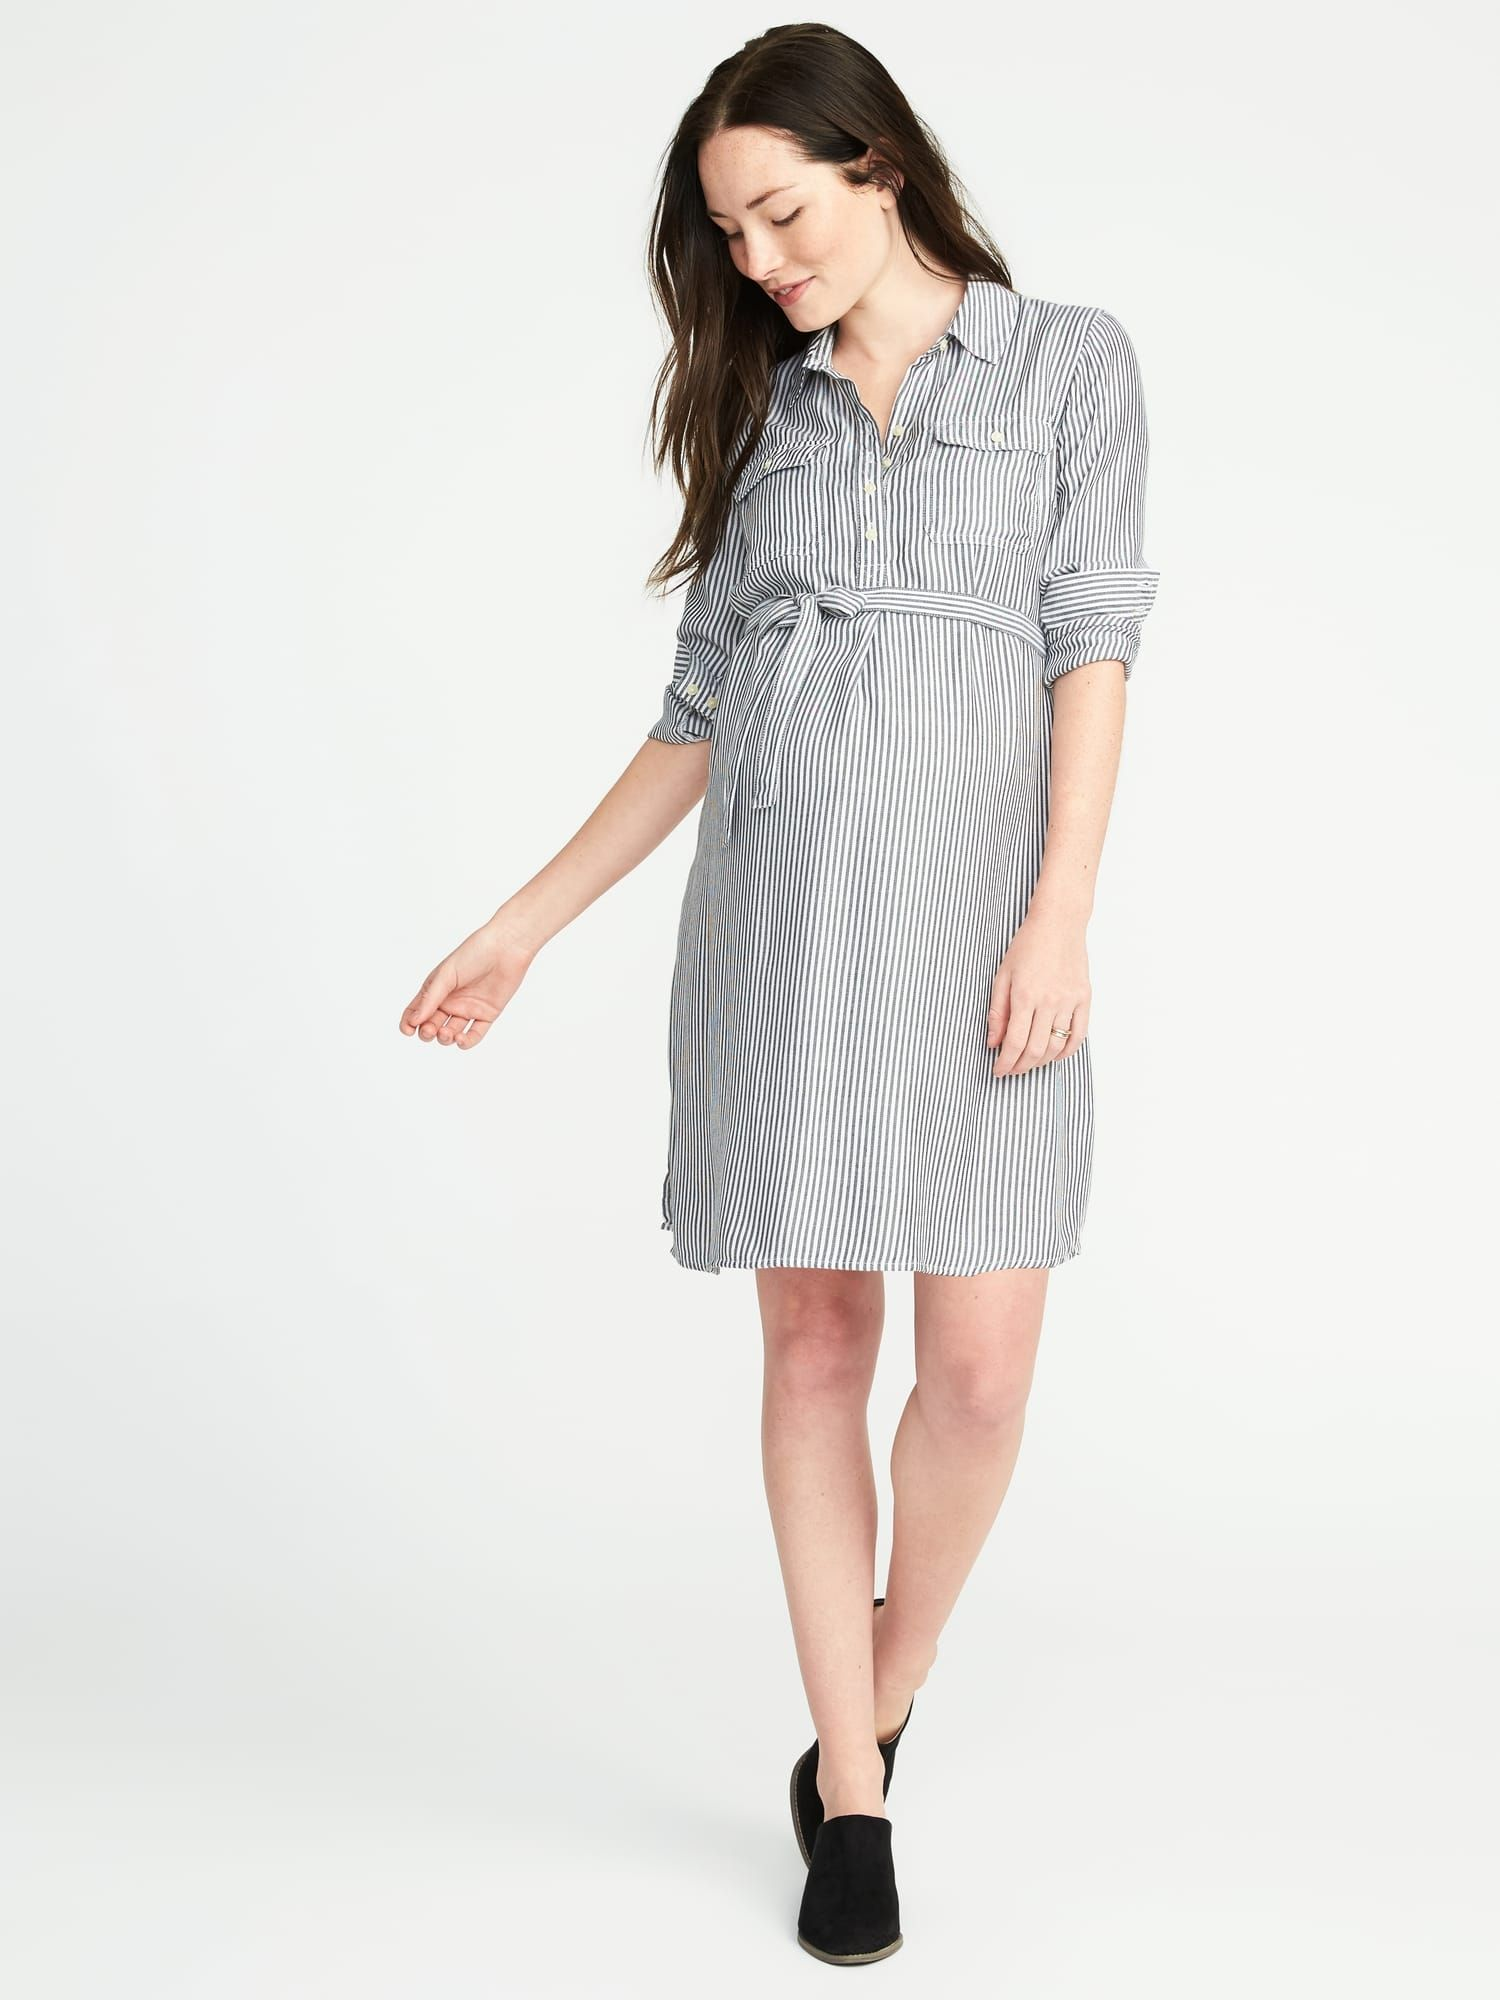 30aaec0aaed Striped Maternity Shirt Dress, Old Navy | Maternity Style ...